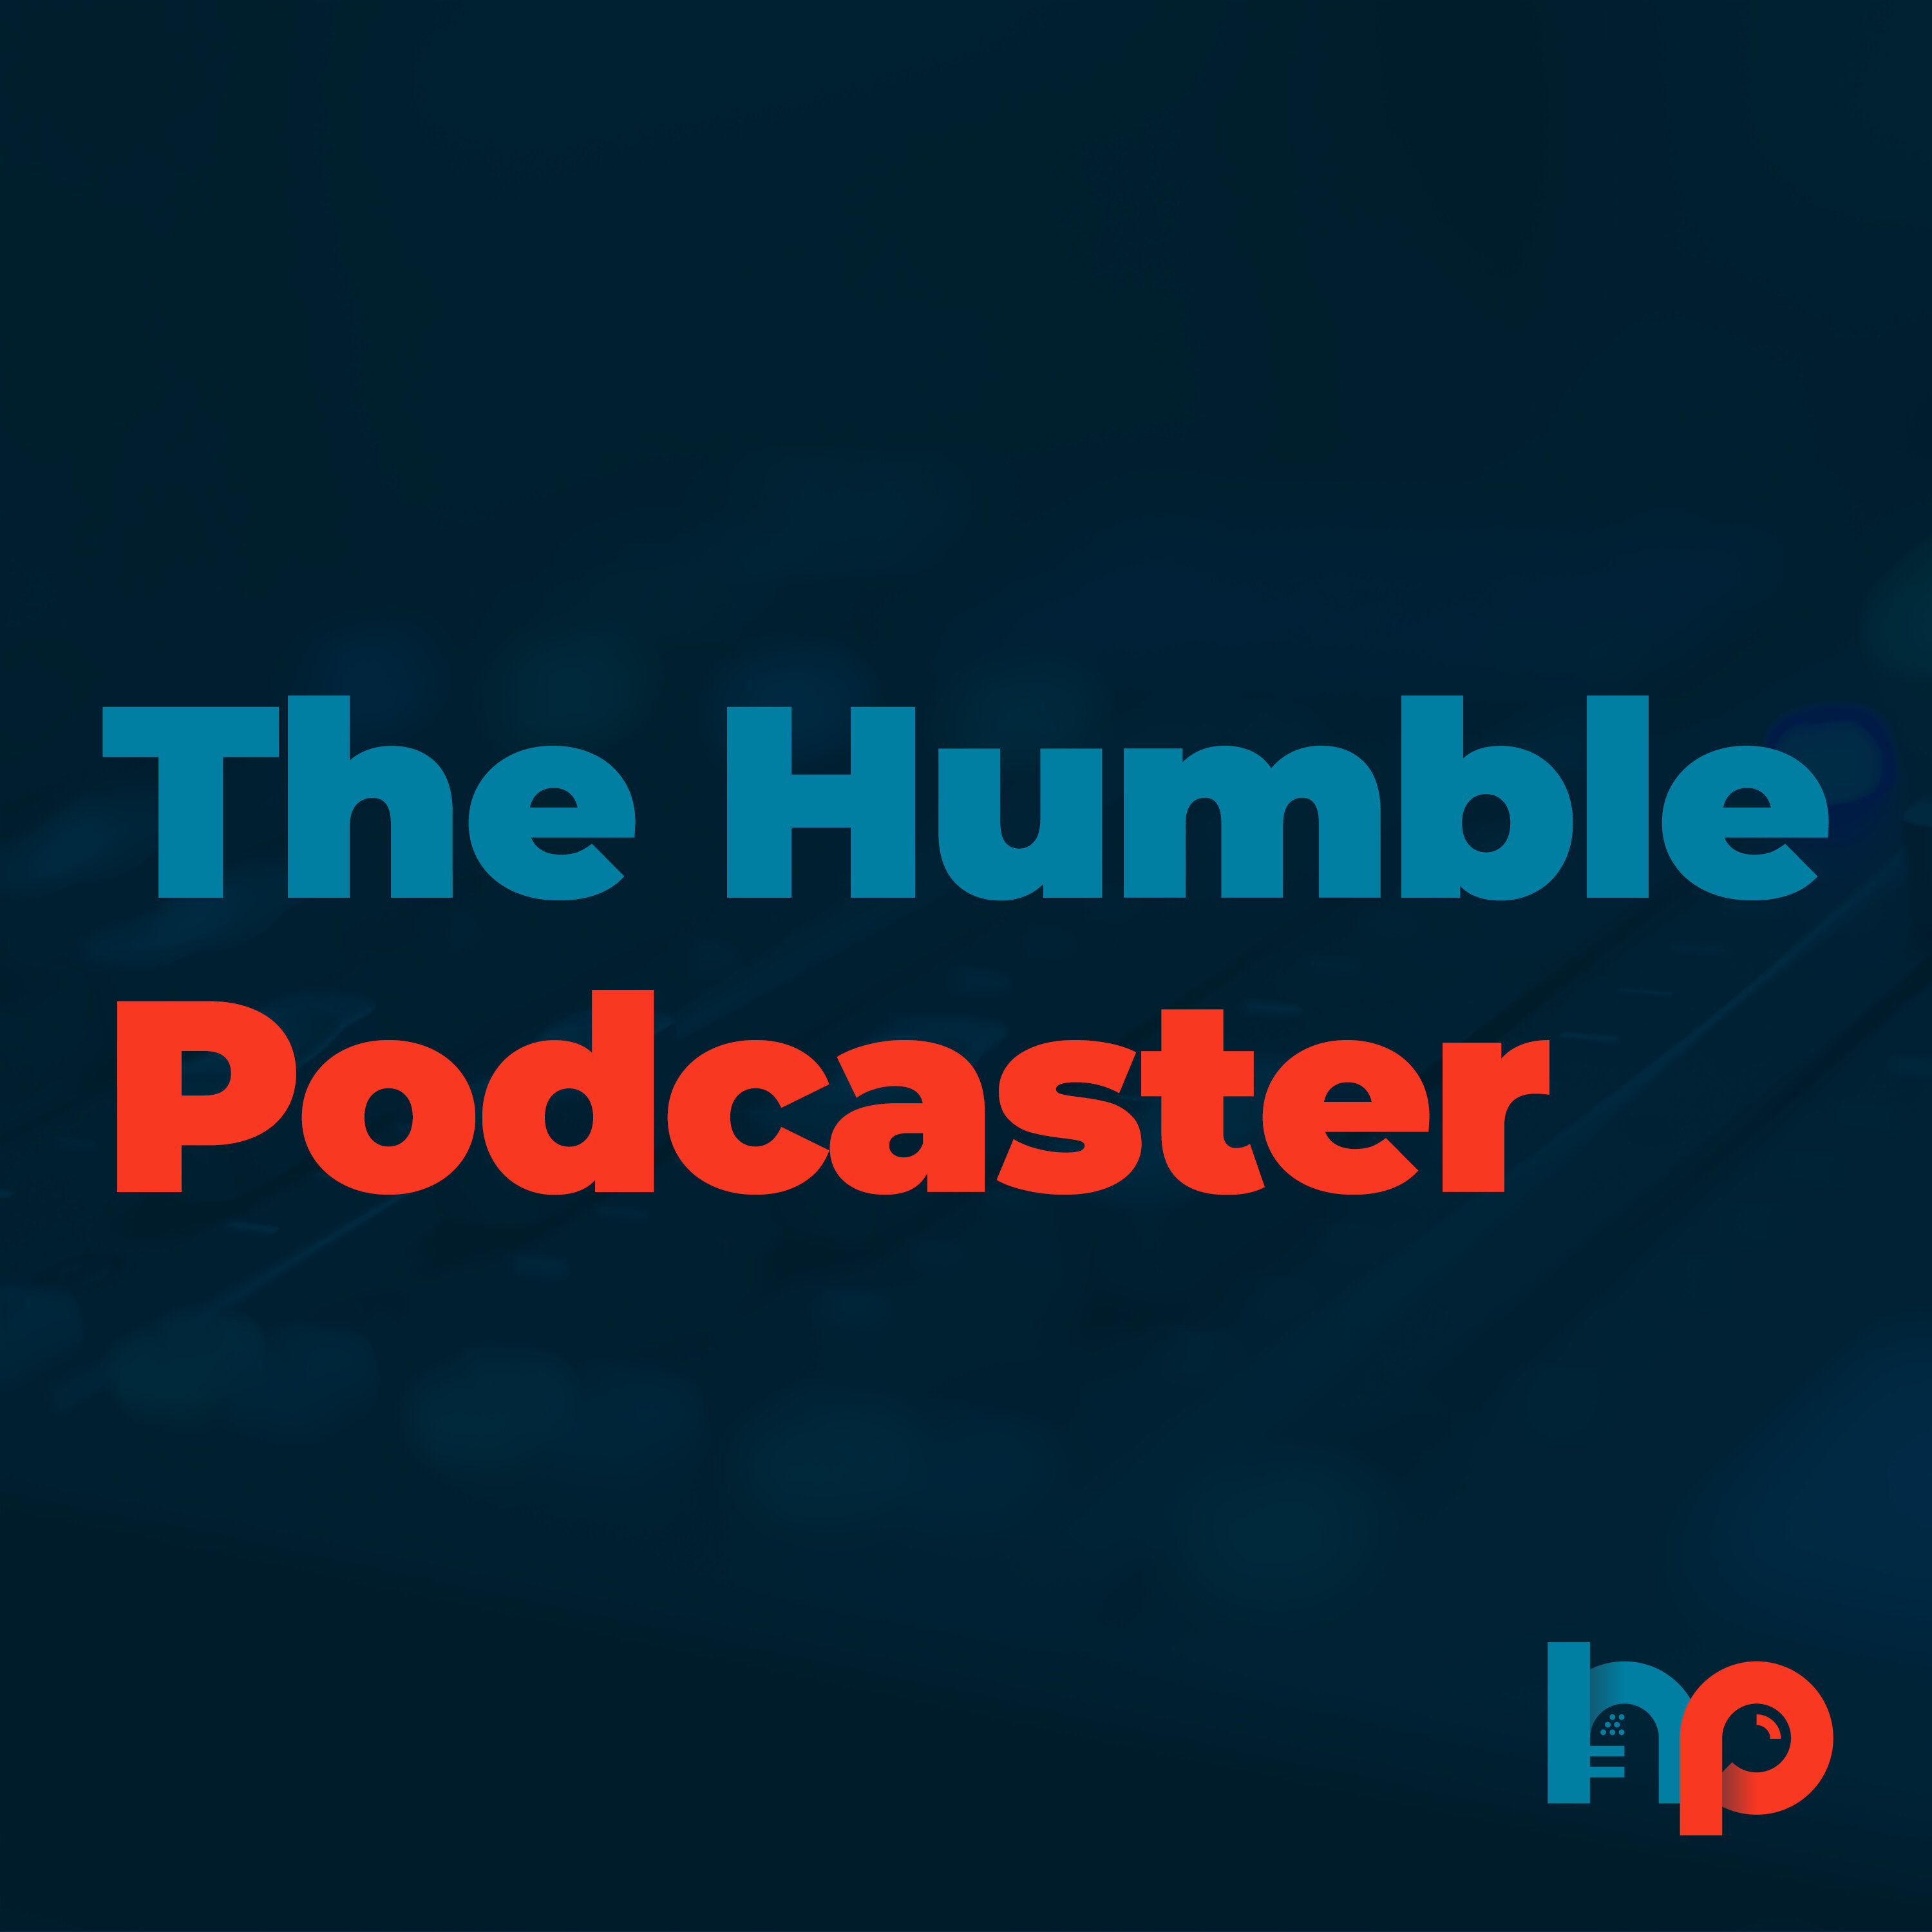 The Humble Podcaster podcast show image